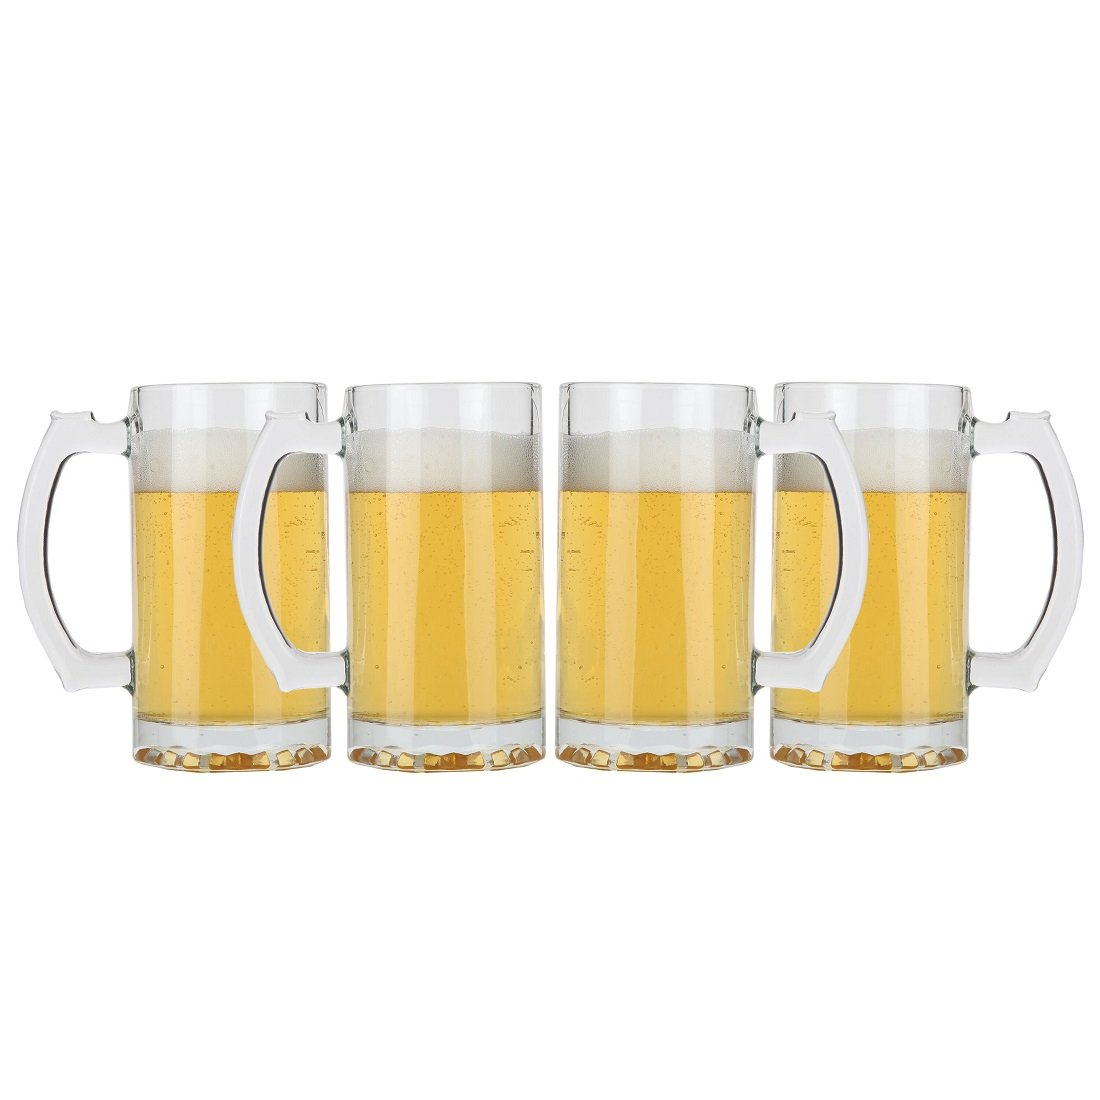 Lily's Home Classic Beer Stein Glasses, Thick Bottoms and Handles, Also Work Great for Root Beer Floats or Lemonade (16 oz. Each, Set of 4) by Lilyshome